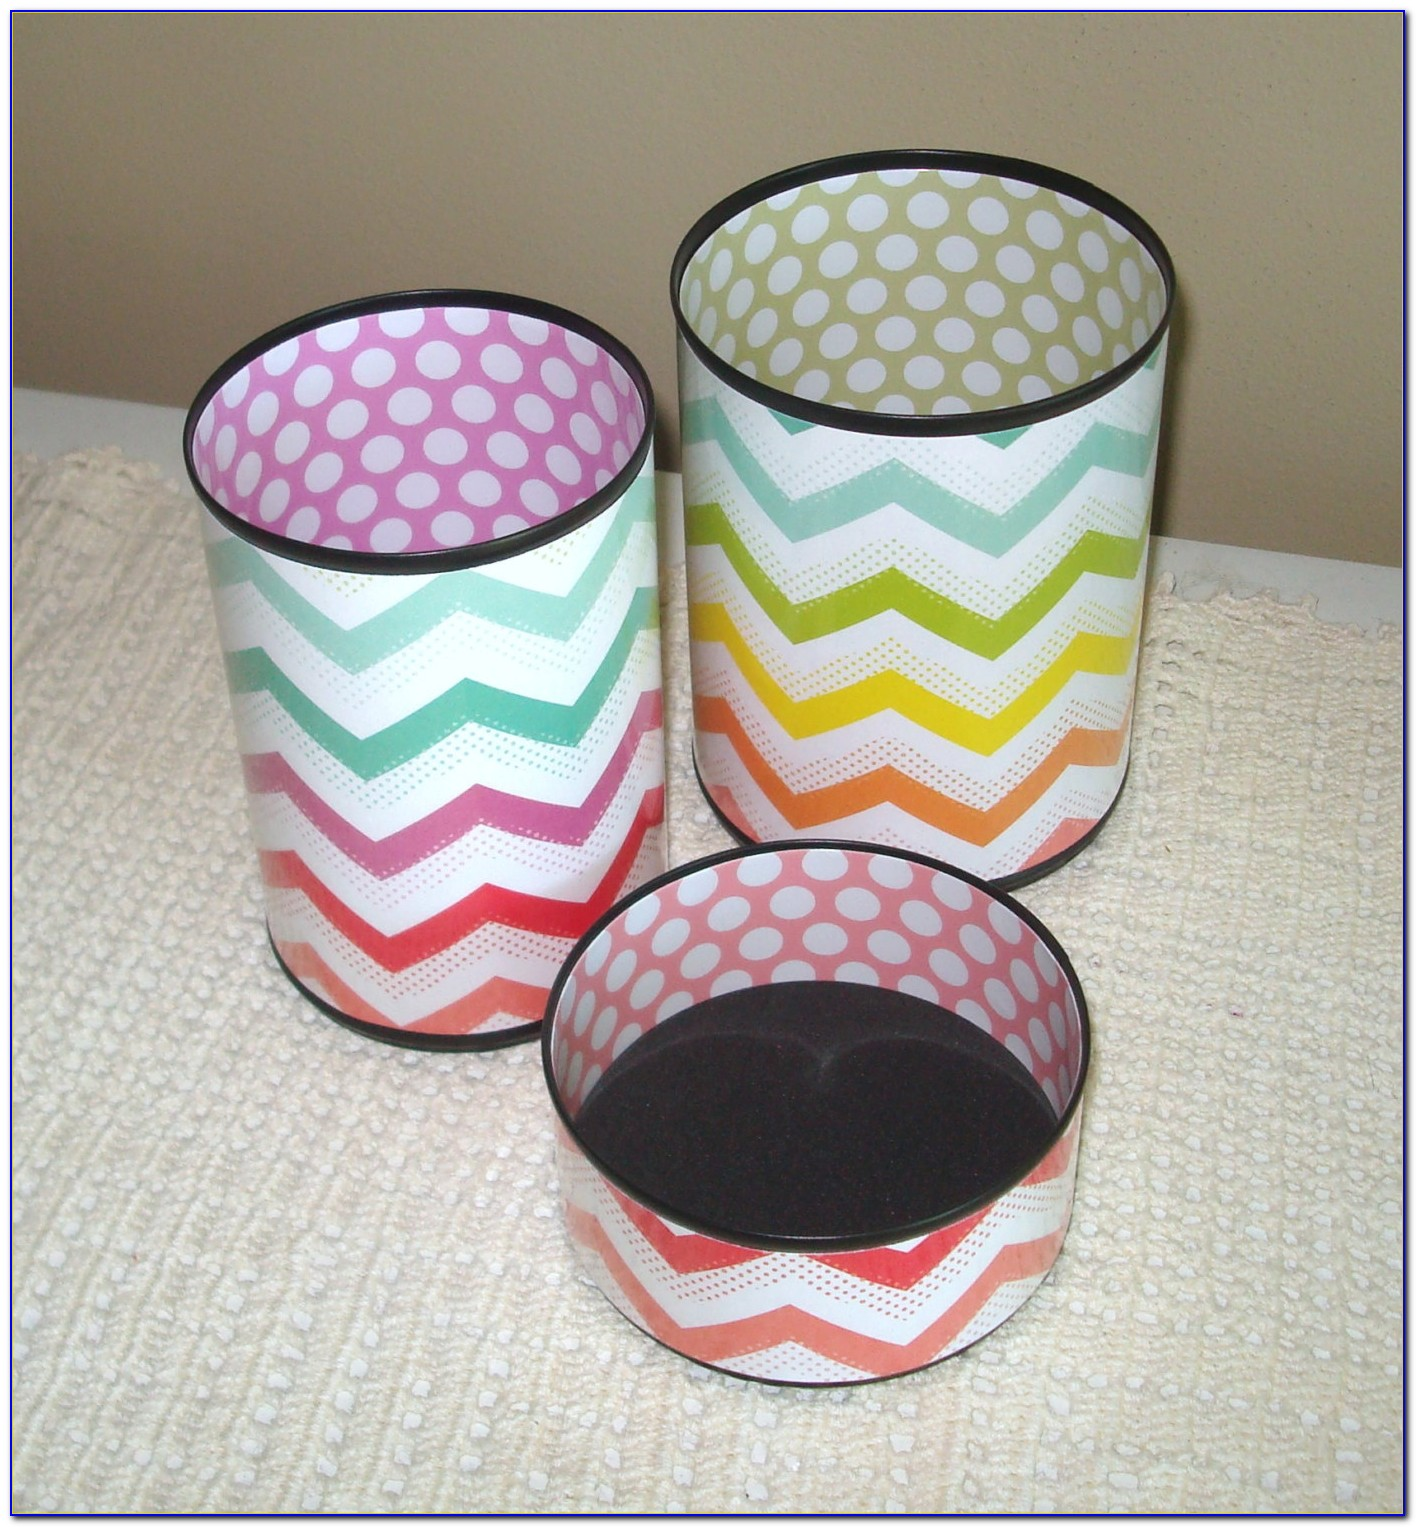 Polka Dot Office Accessories